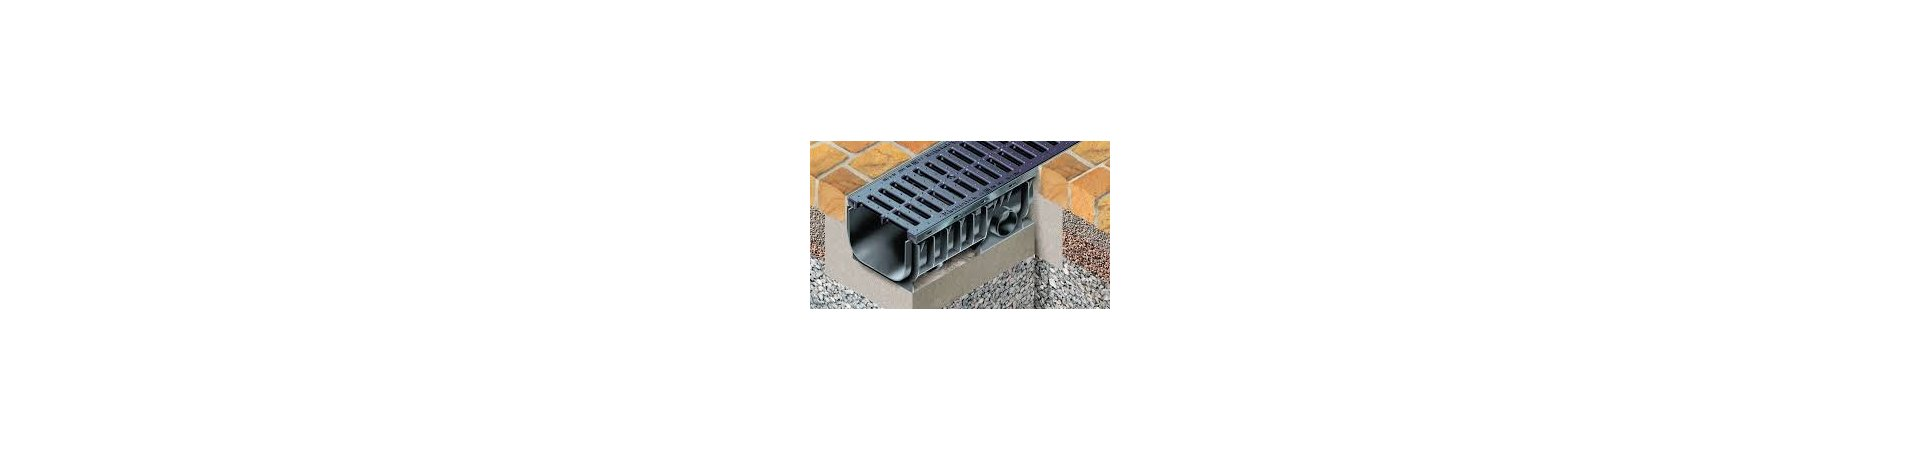 Drainage drains is a producer of solutions for water drainage